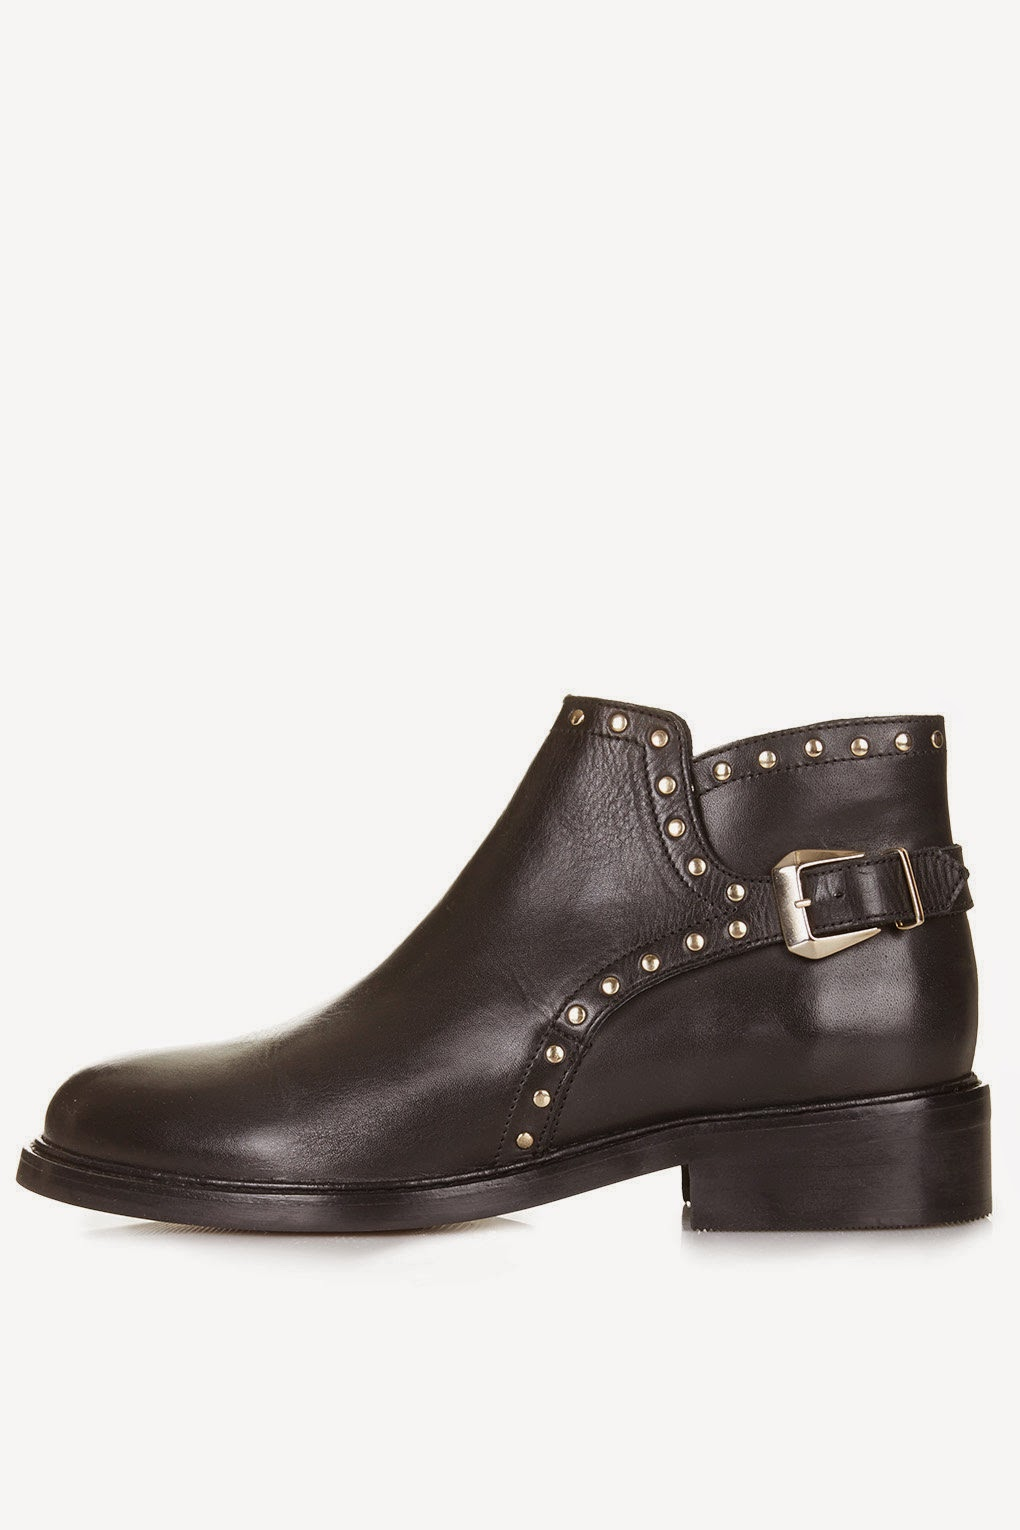 black studded ankle boots,